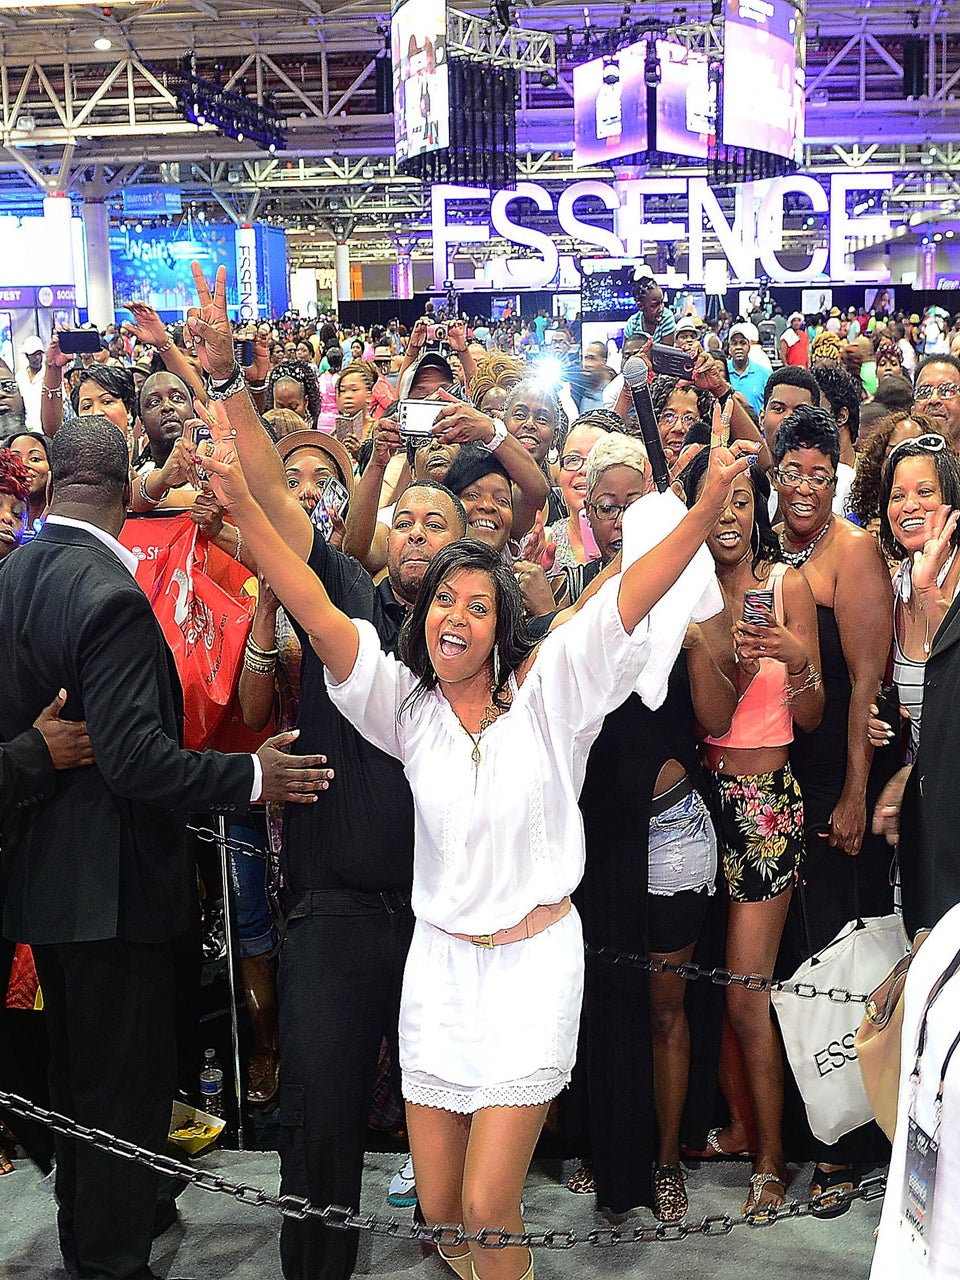 ESSENCE Poll: What Do You Hope To Get When You Meet a Celeb?